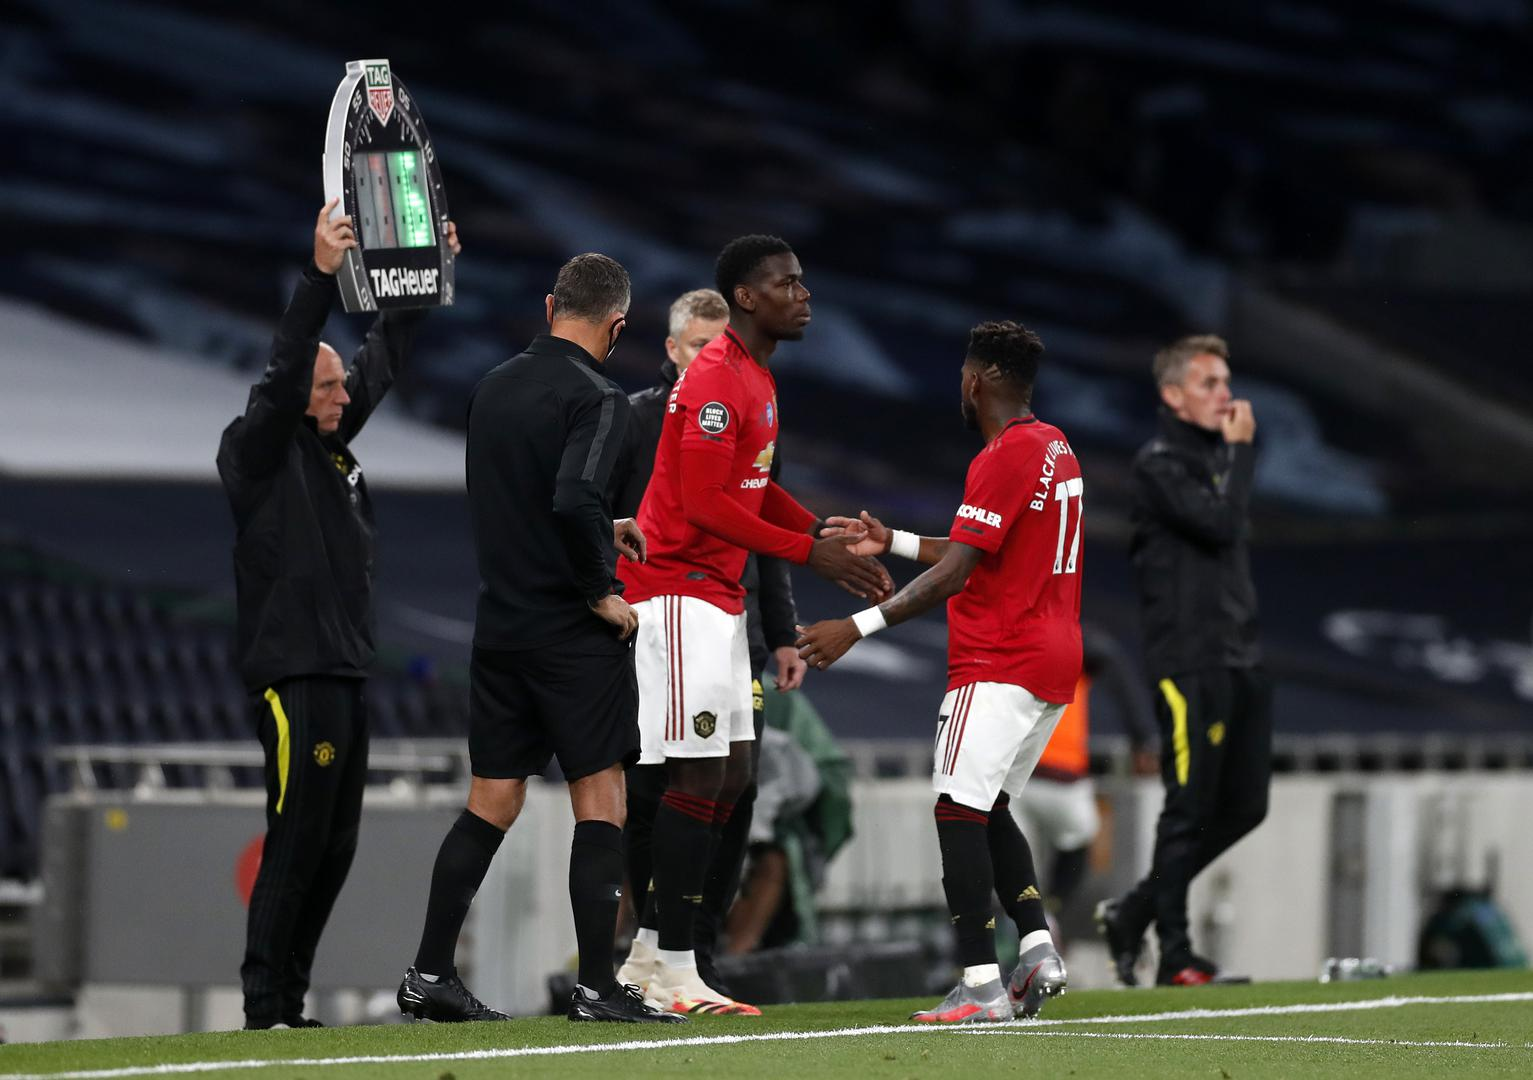 Paul Pogba comes on for Fred as a substitute at Tottenham Hotspur Stadium,